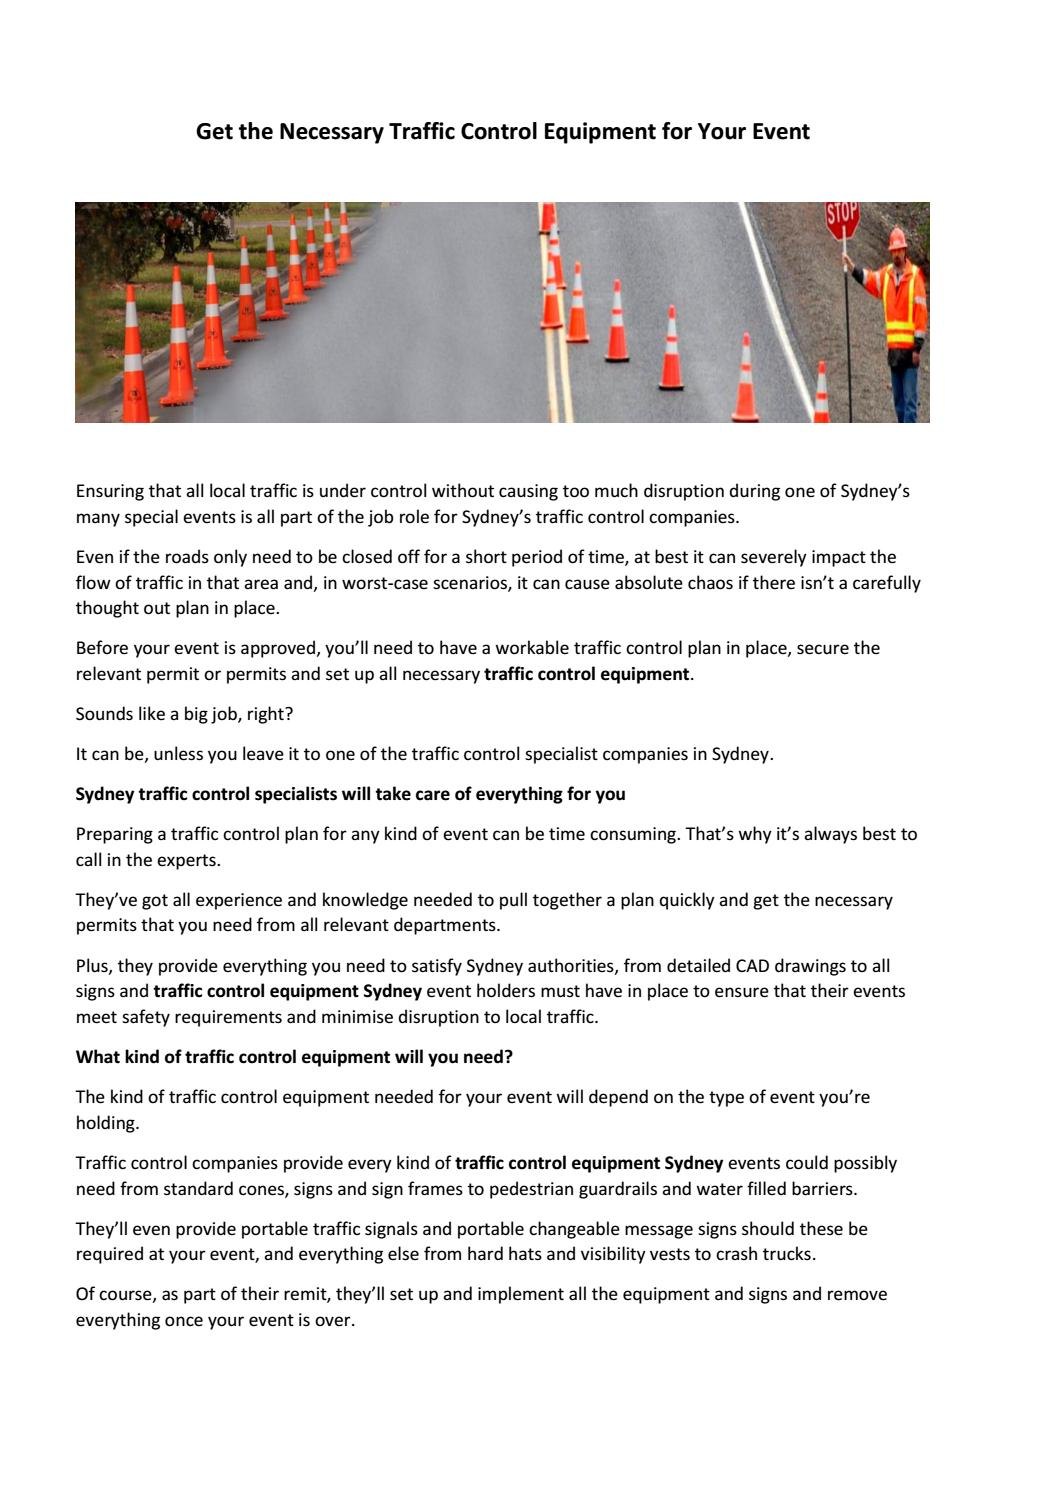 Get the Necessary Traffic Control Equipment for Your Event